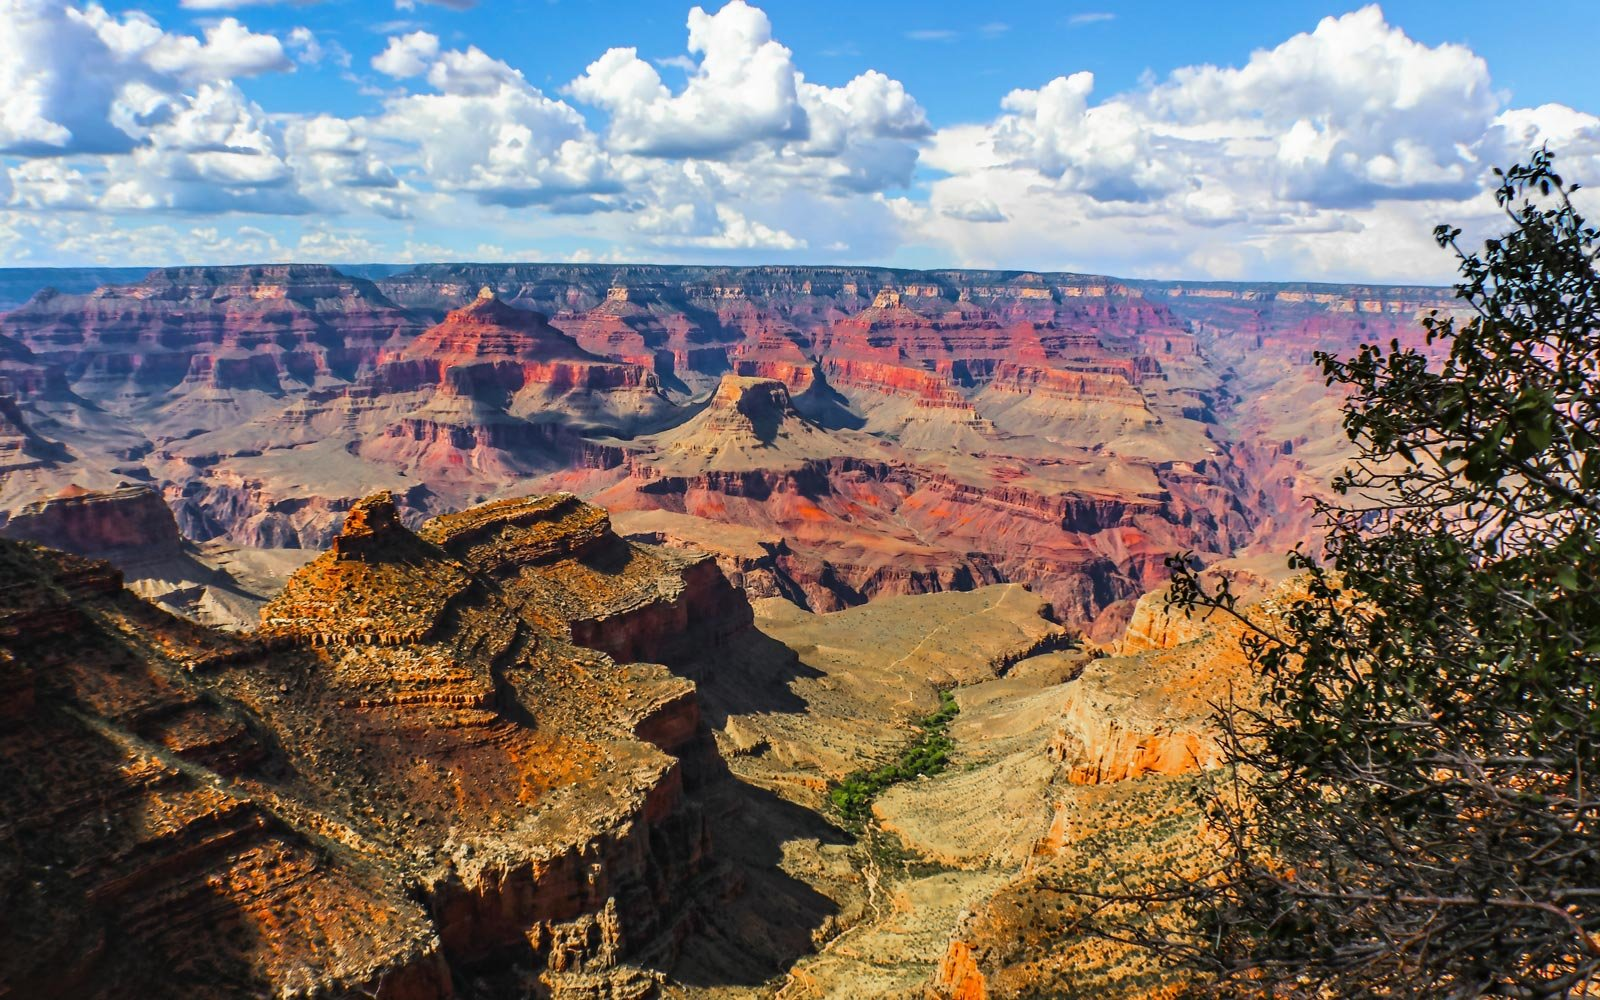 The vastness of the Grand Canyon - View from South Rim at the worlds held in this one majestic canyon with its mesa and rivers and bluffs and cliffs under a dramatic sky